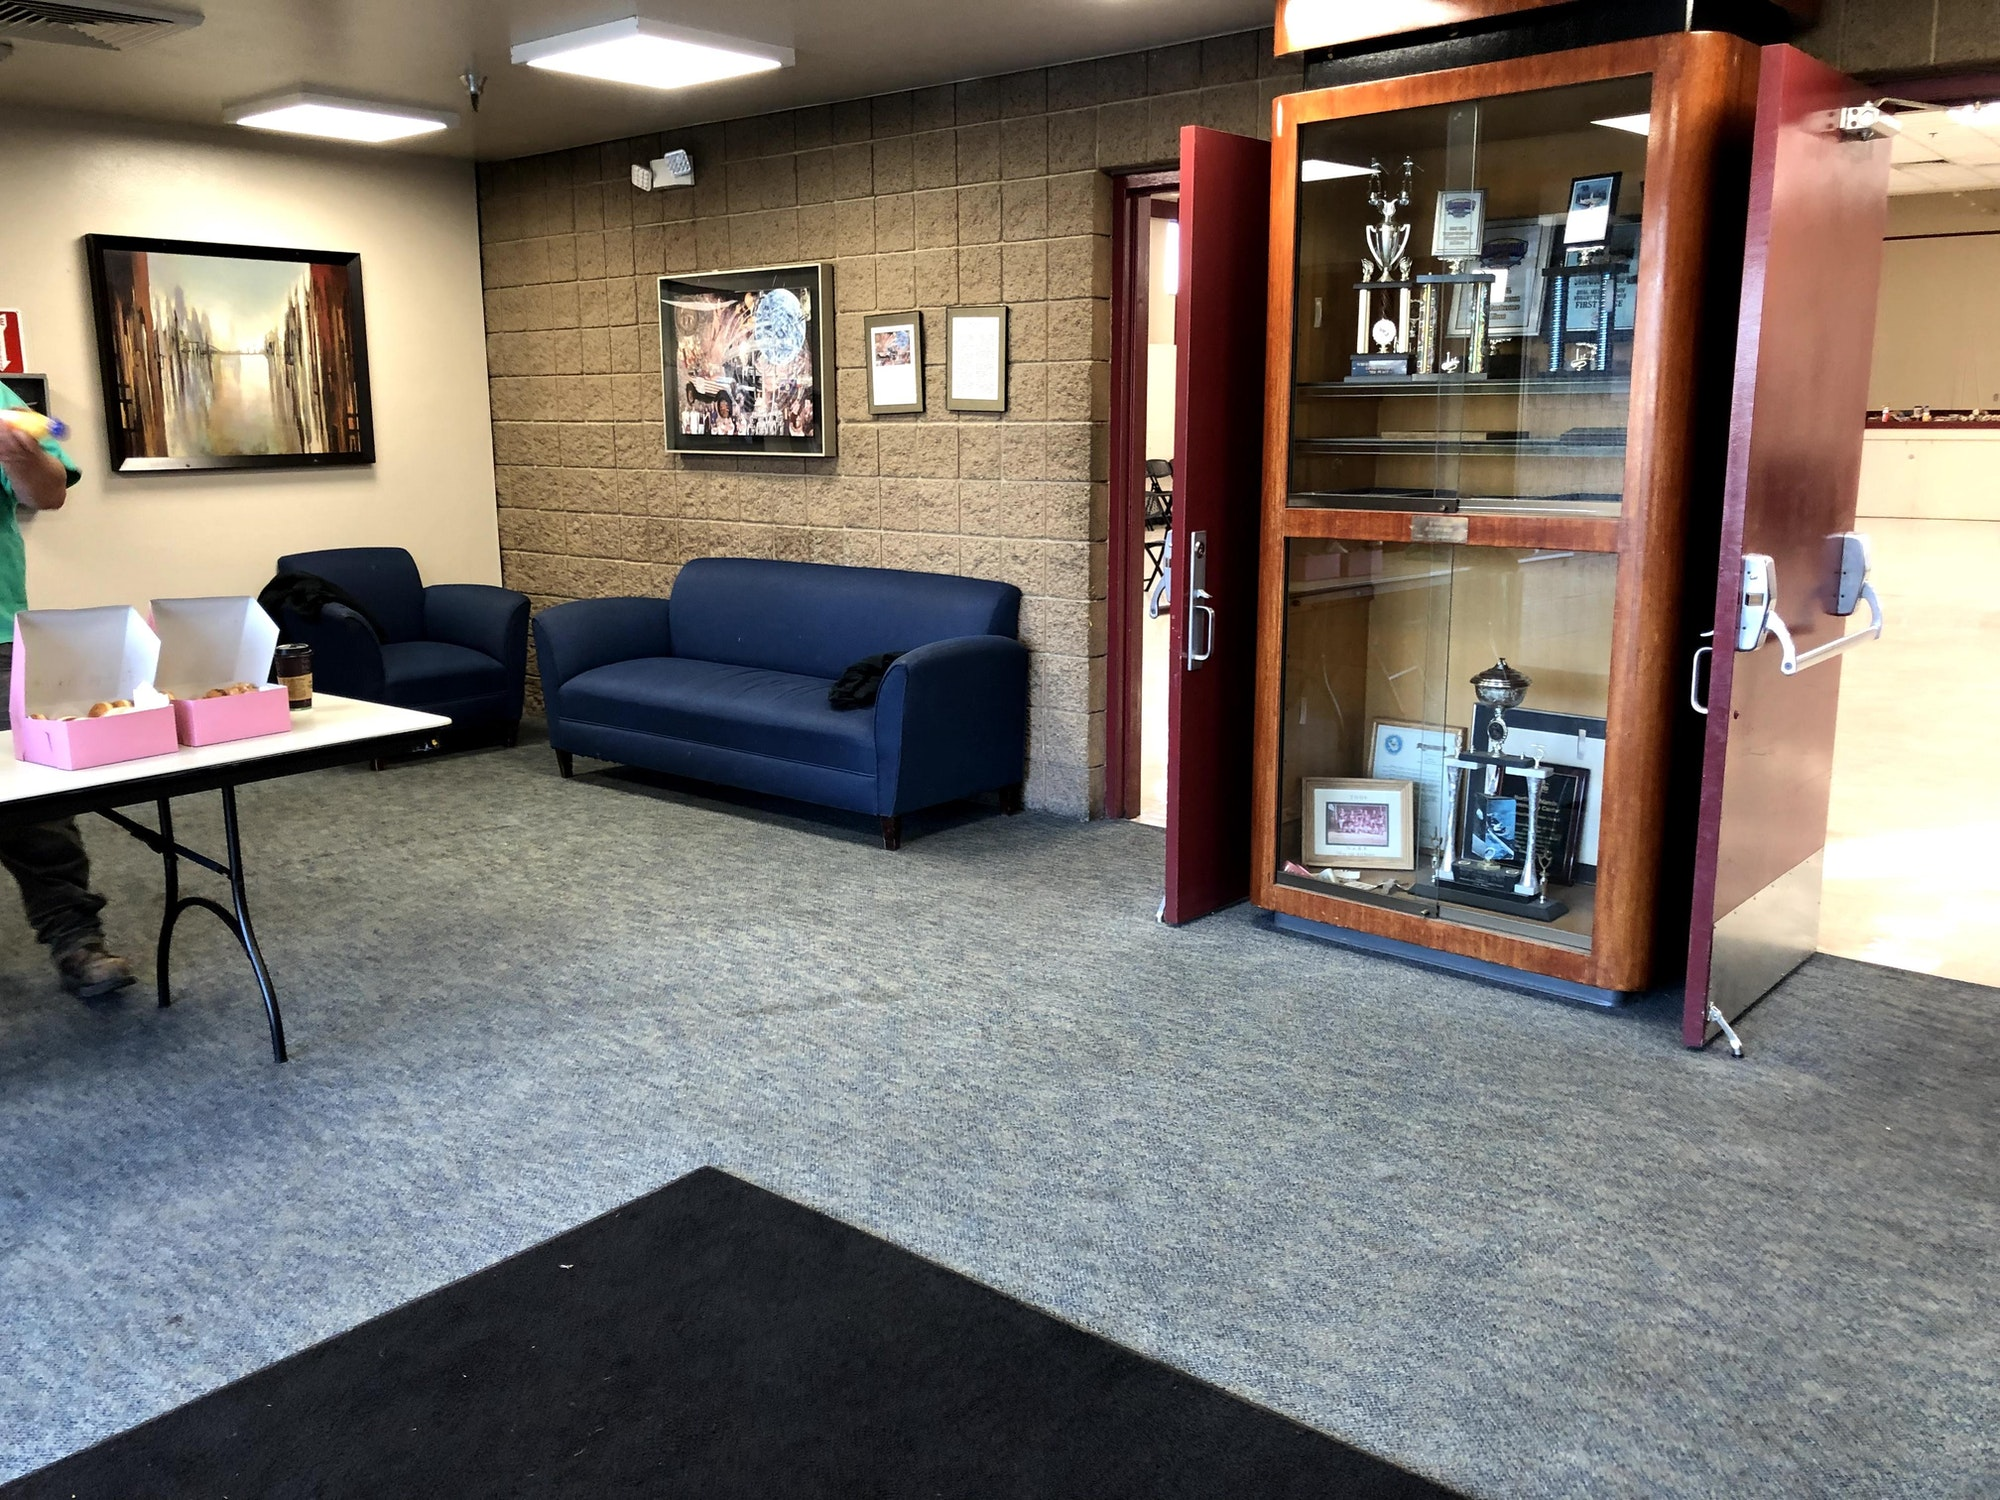 Lobby of the Kay F. Dahill Community Center